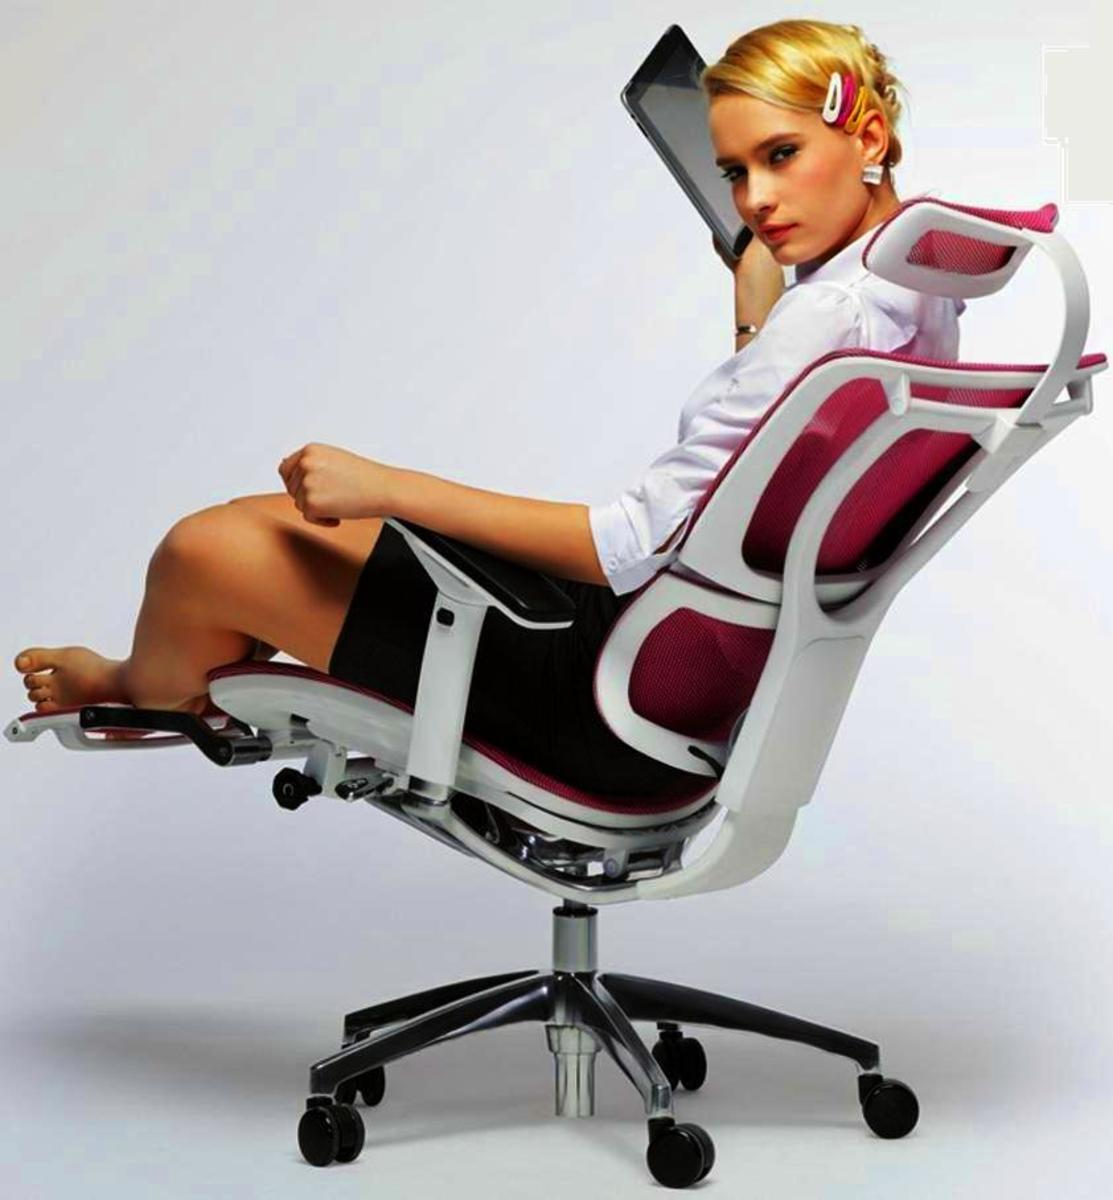 whether you go to an office everyday or you work at home like myself acquiring good ergonomic chairs is an investment with substantial returns because it